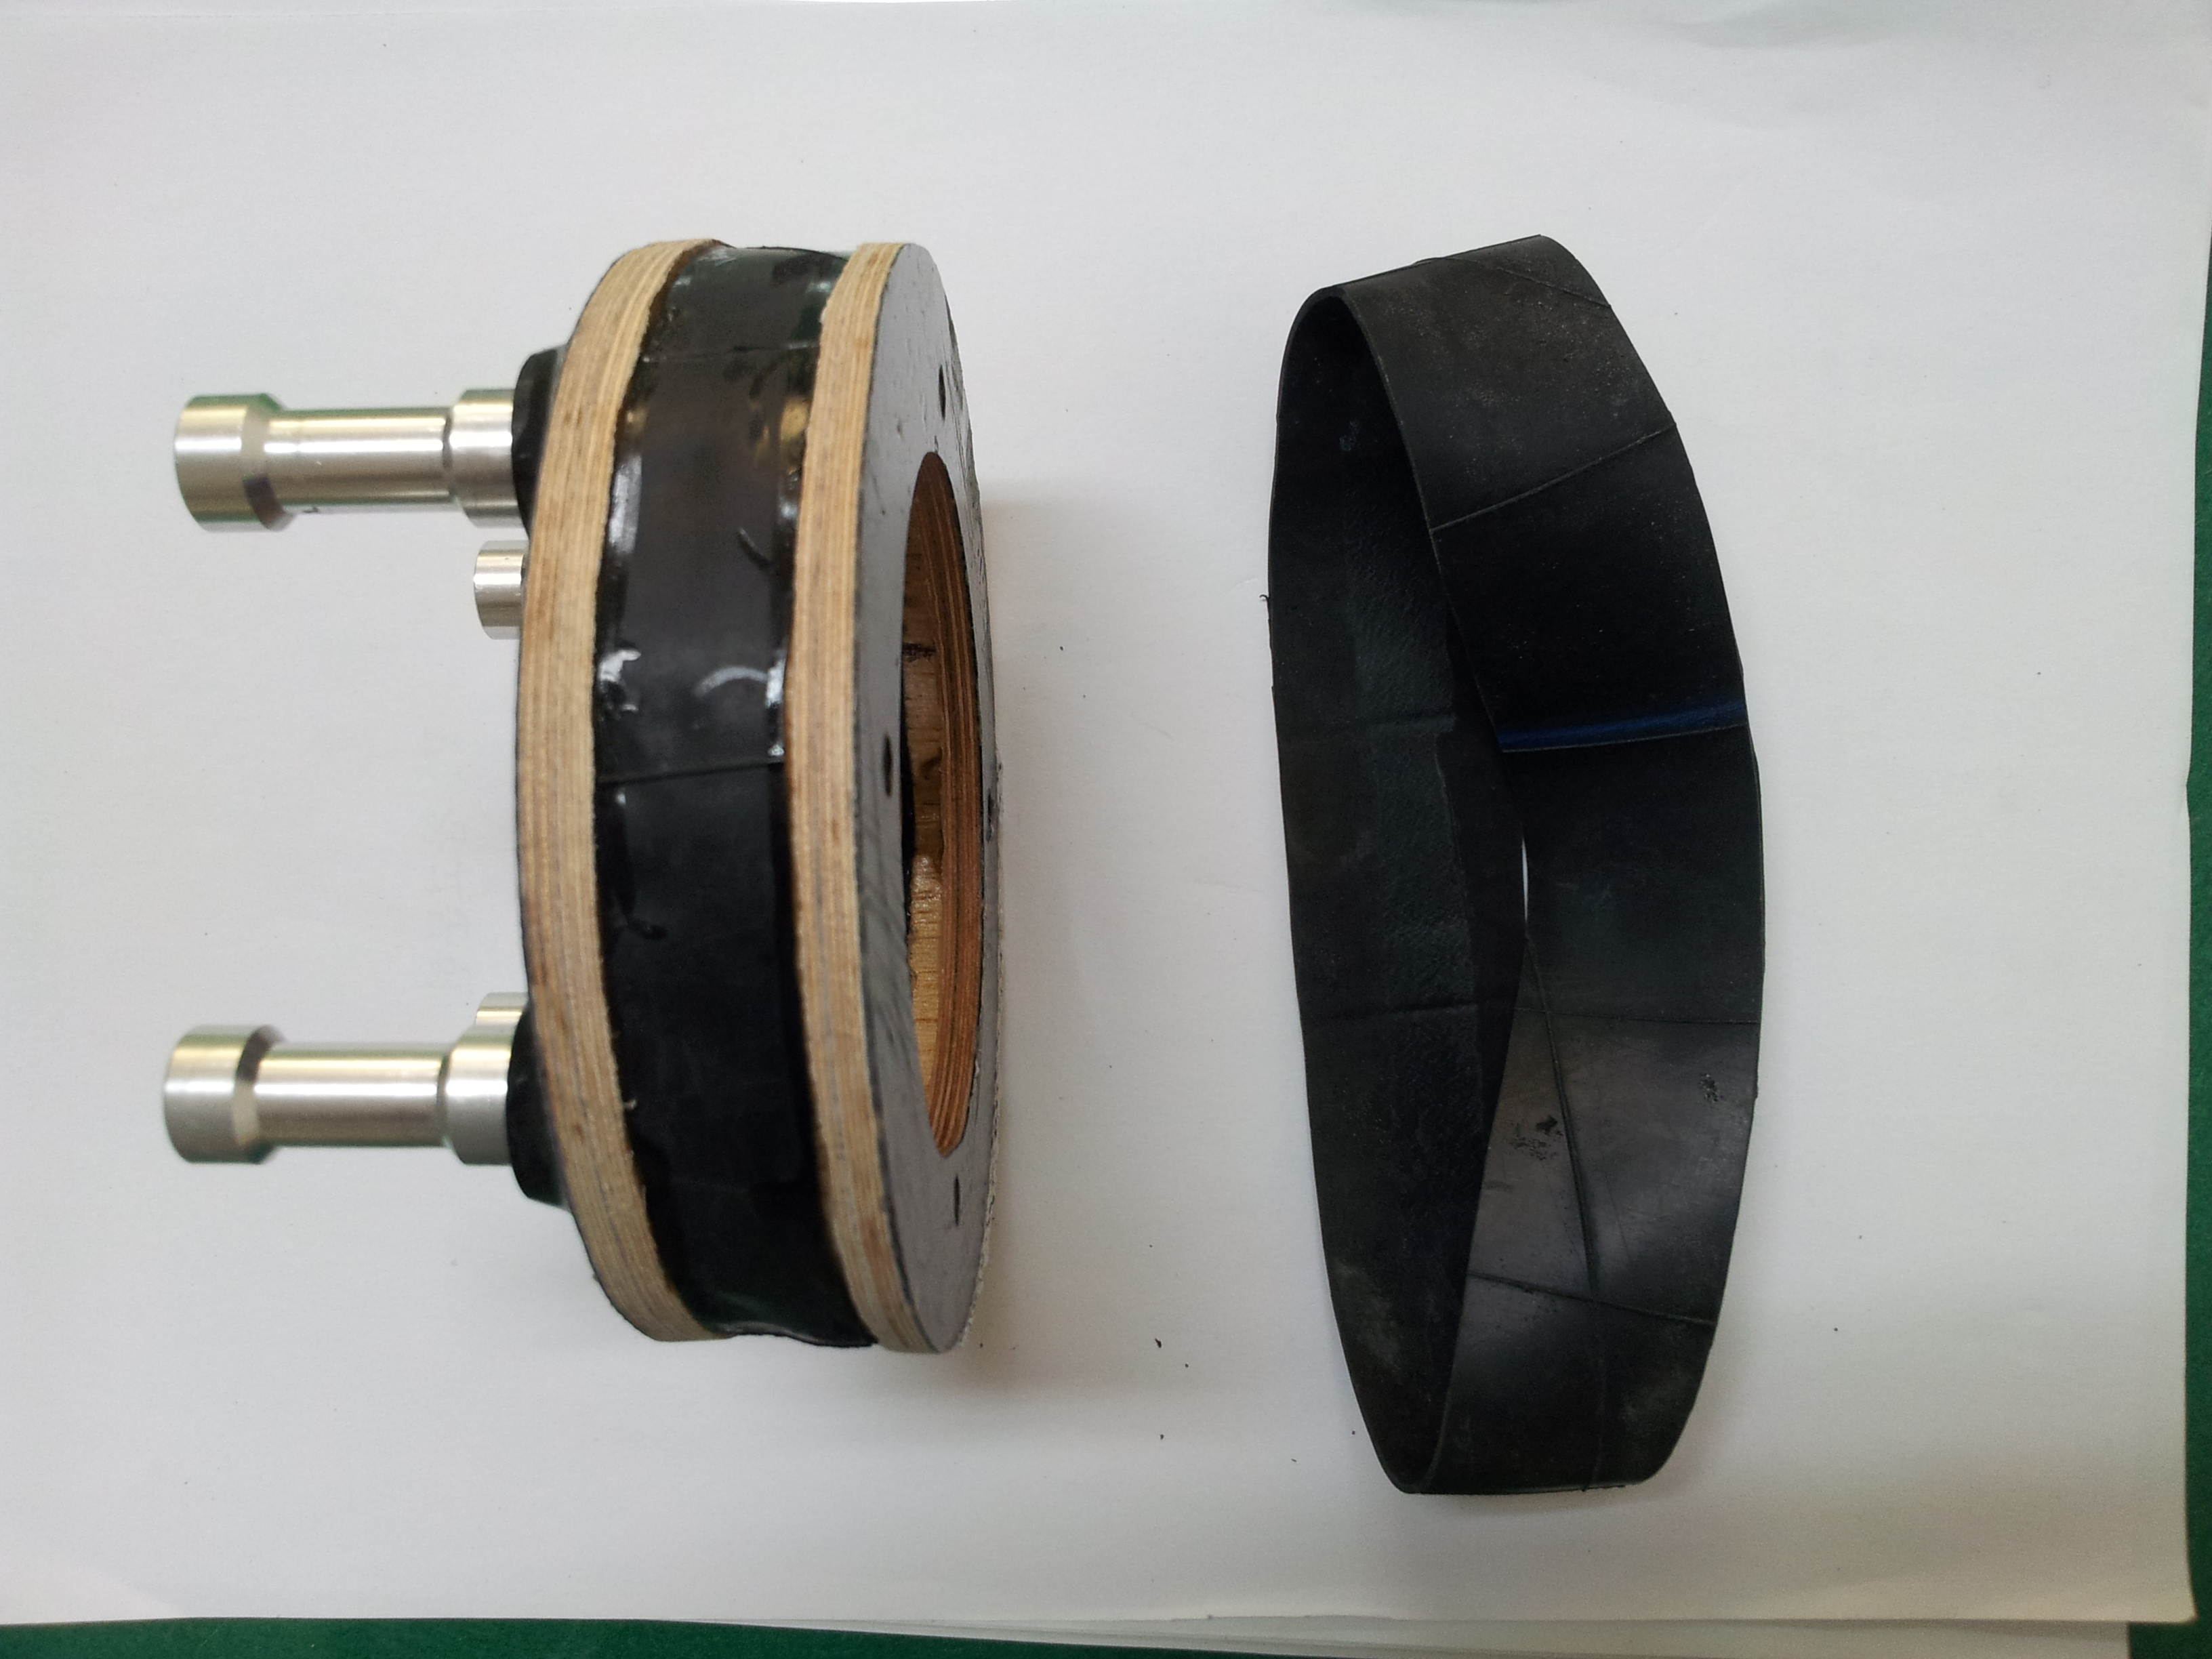 Click image for larger version  Name:one rubber ring.jpg Views:327 Size:2.08 MB ID:1925128